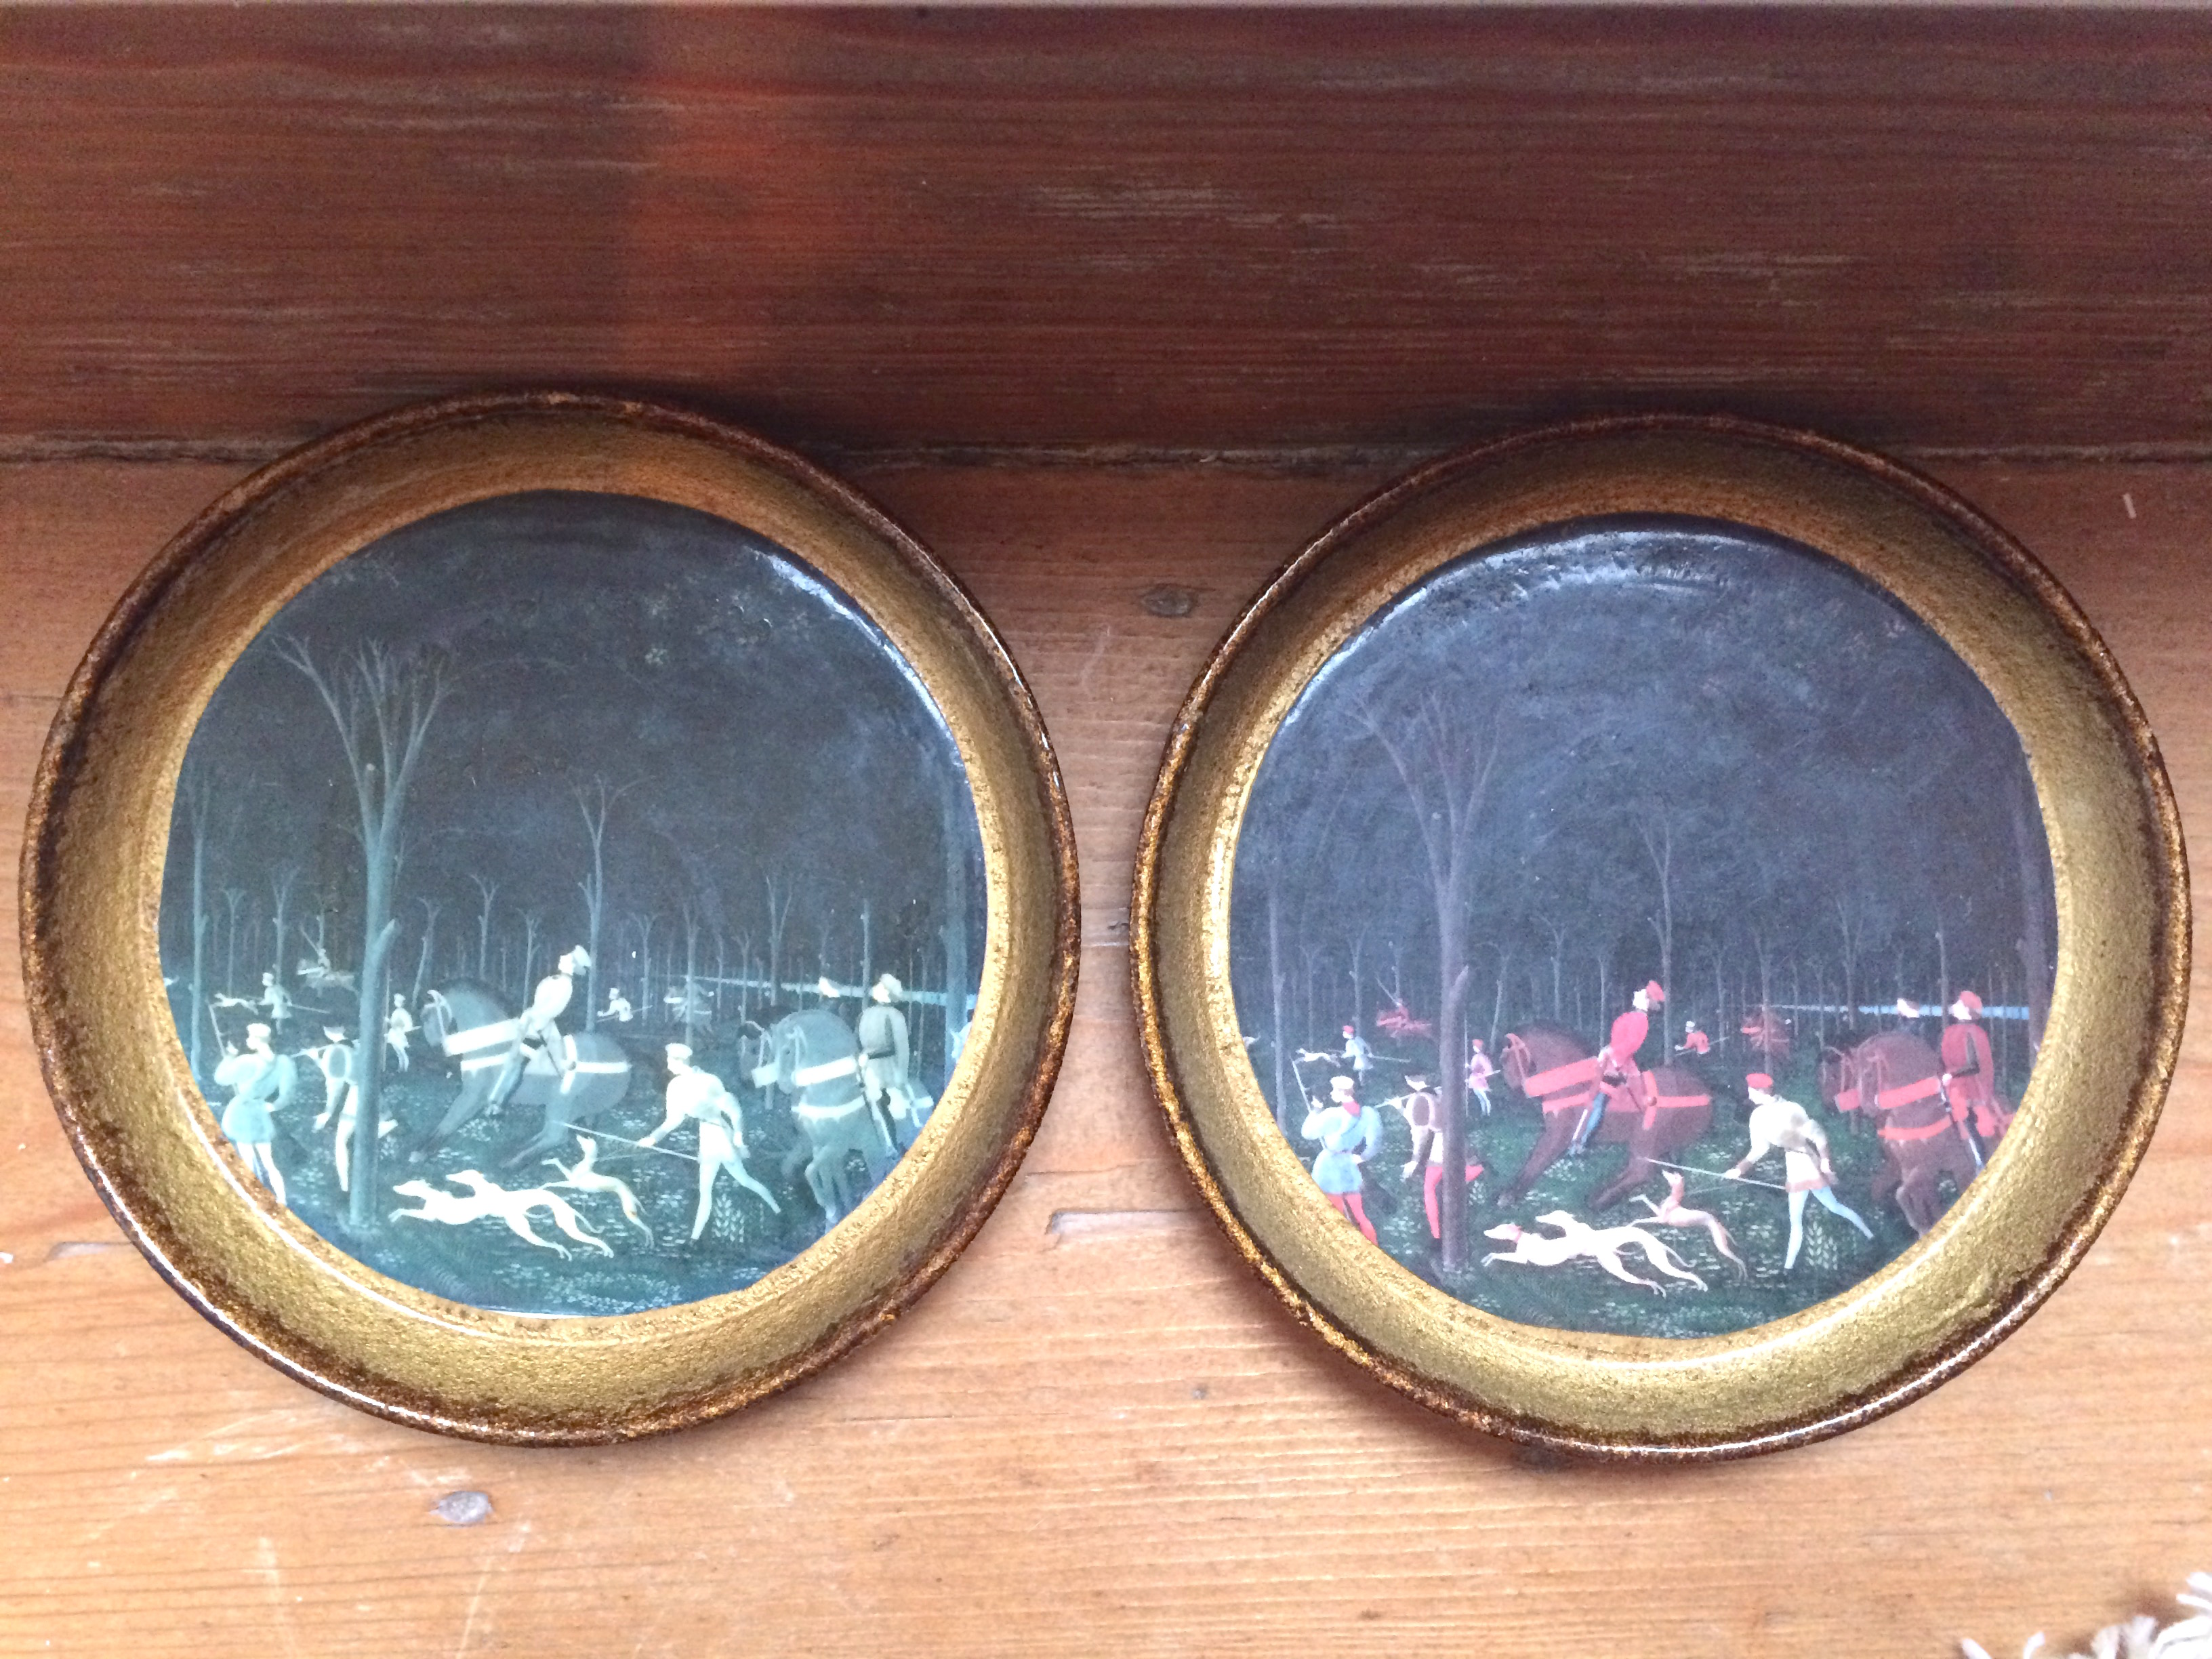 Two identical coasters showing the effects of UV and sunlight damage